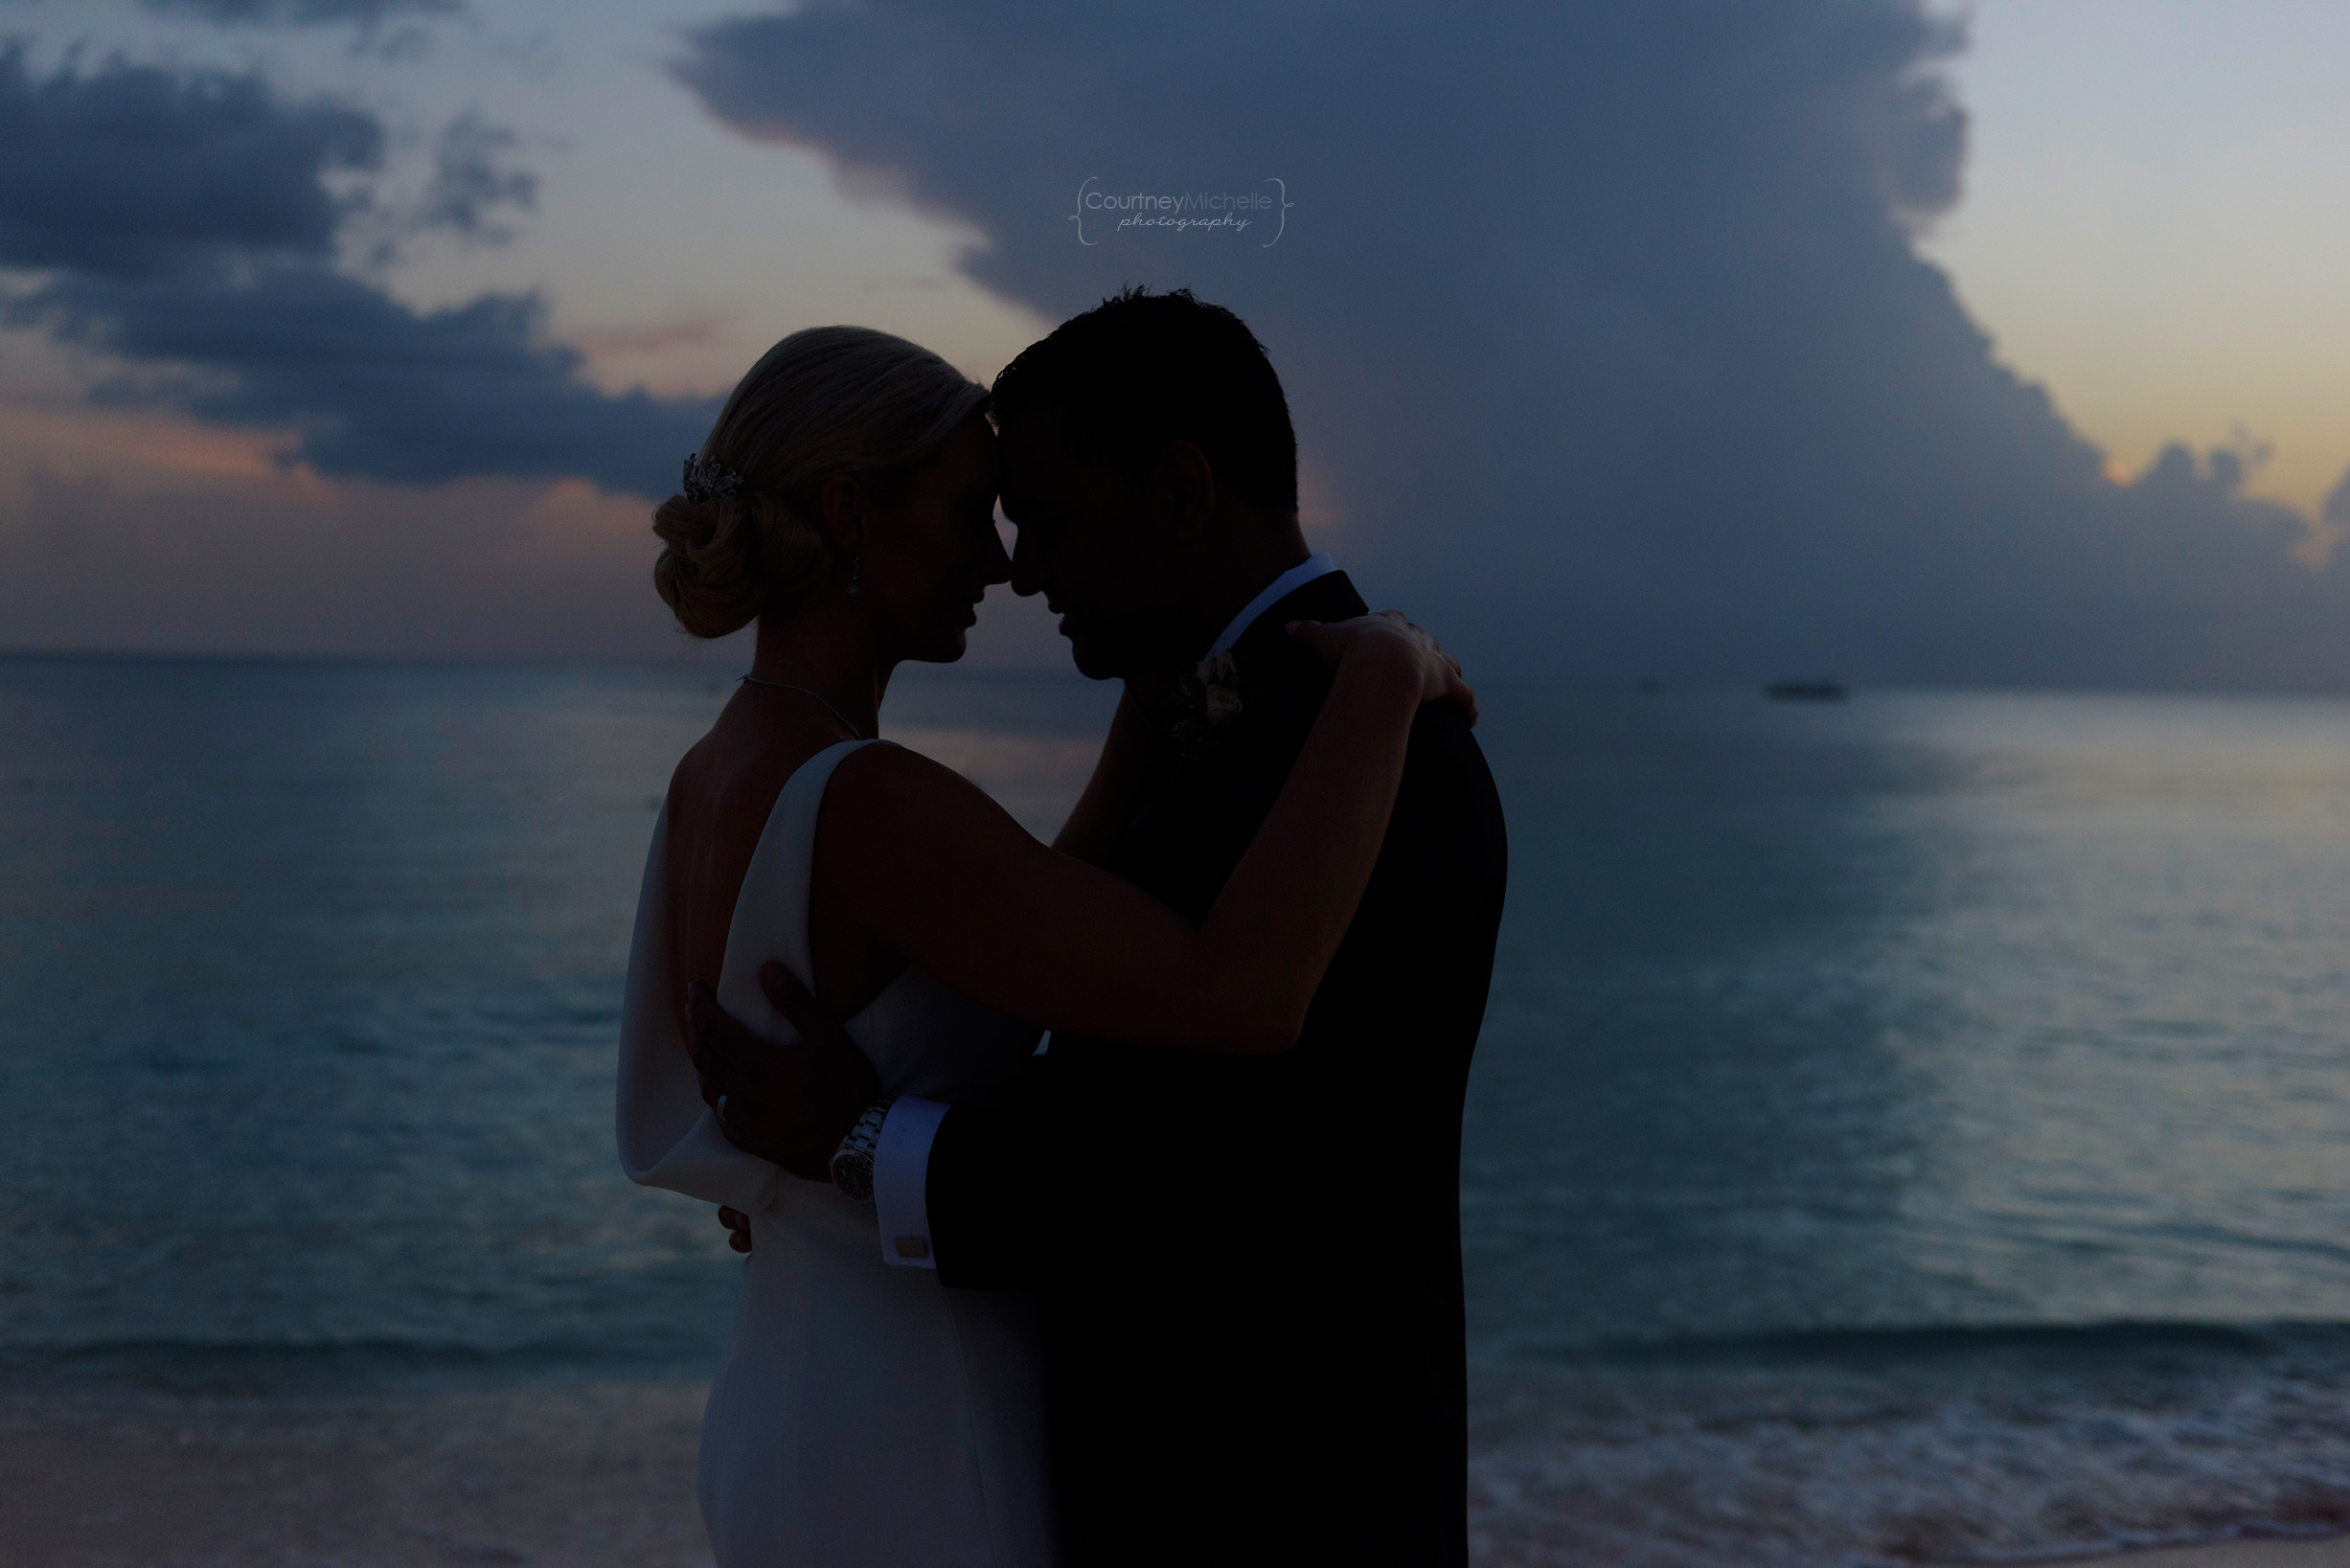 bride-and-groom-portrait-grand-cayman-beach-wedding-photography-by-courtney-laper©CopyrightCMP-LeaAnneRaj-7977.jpg